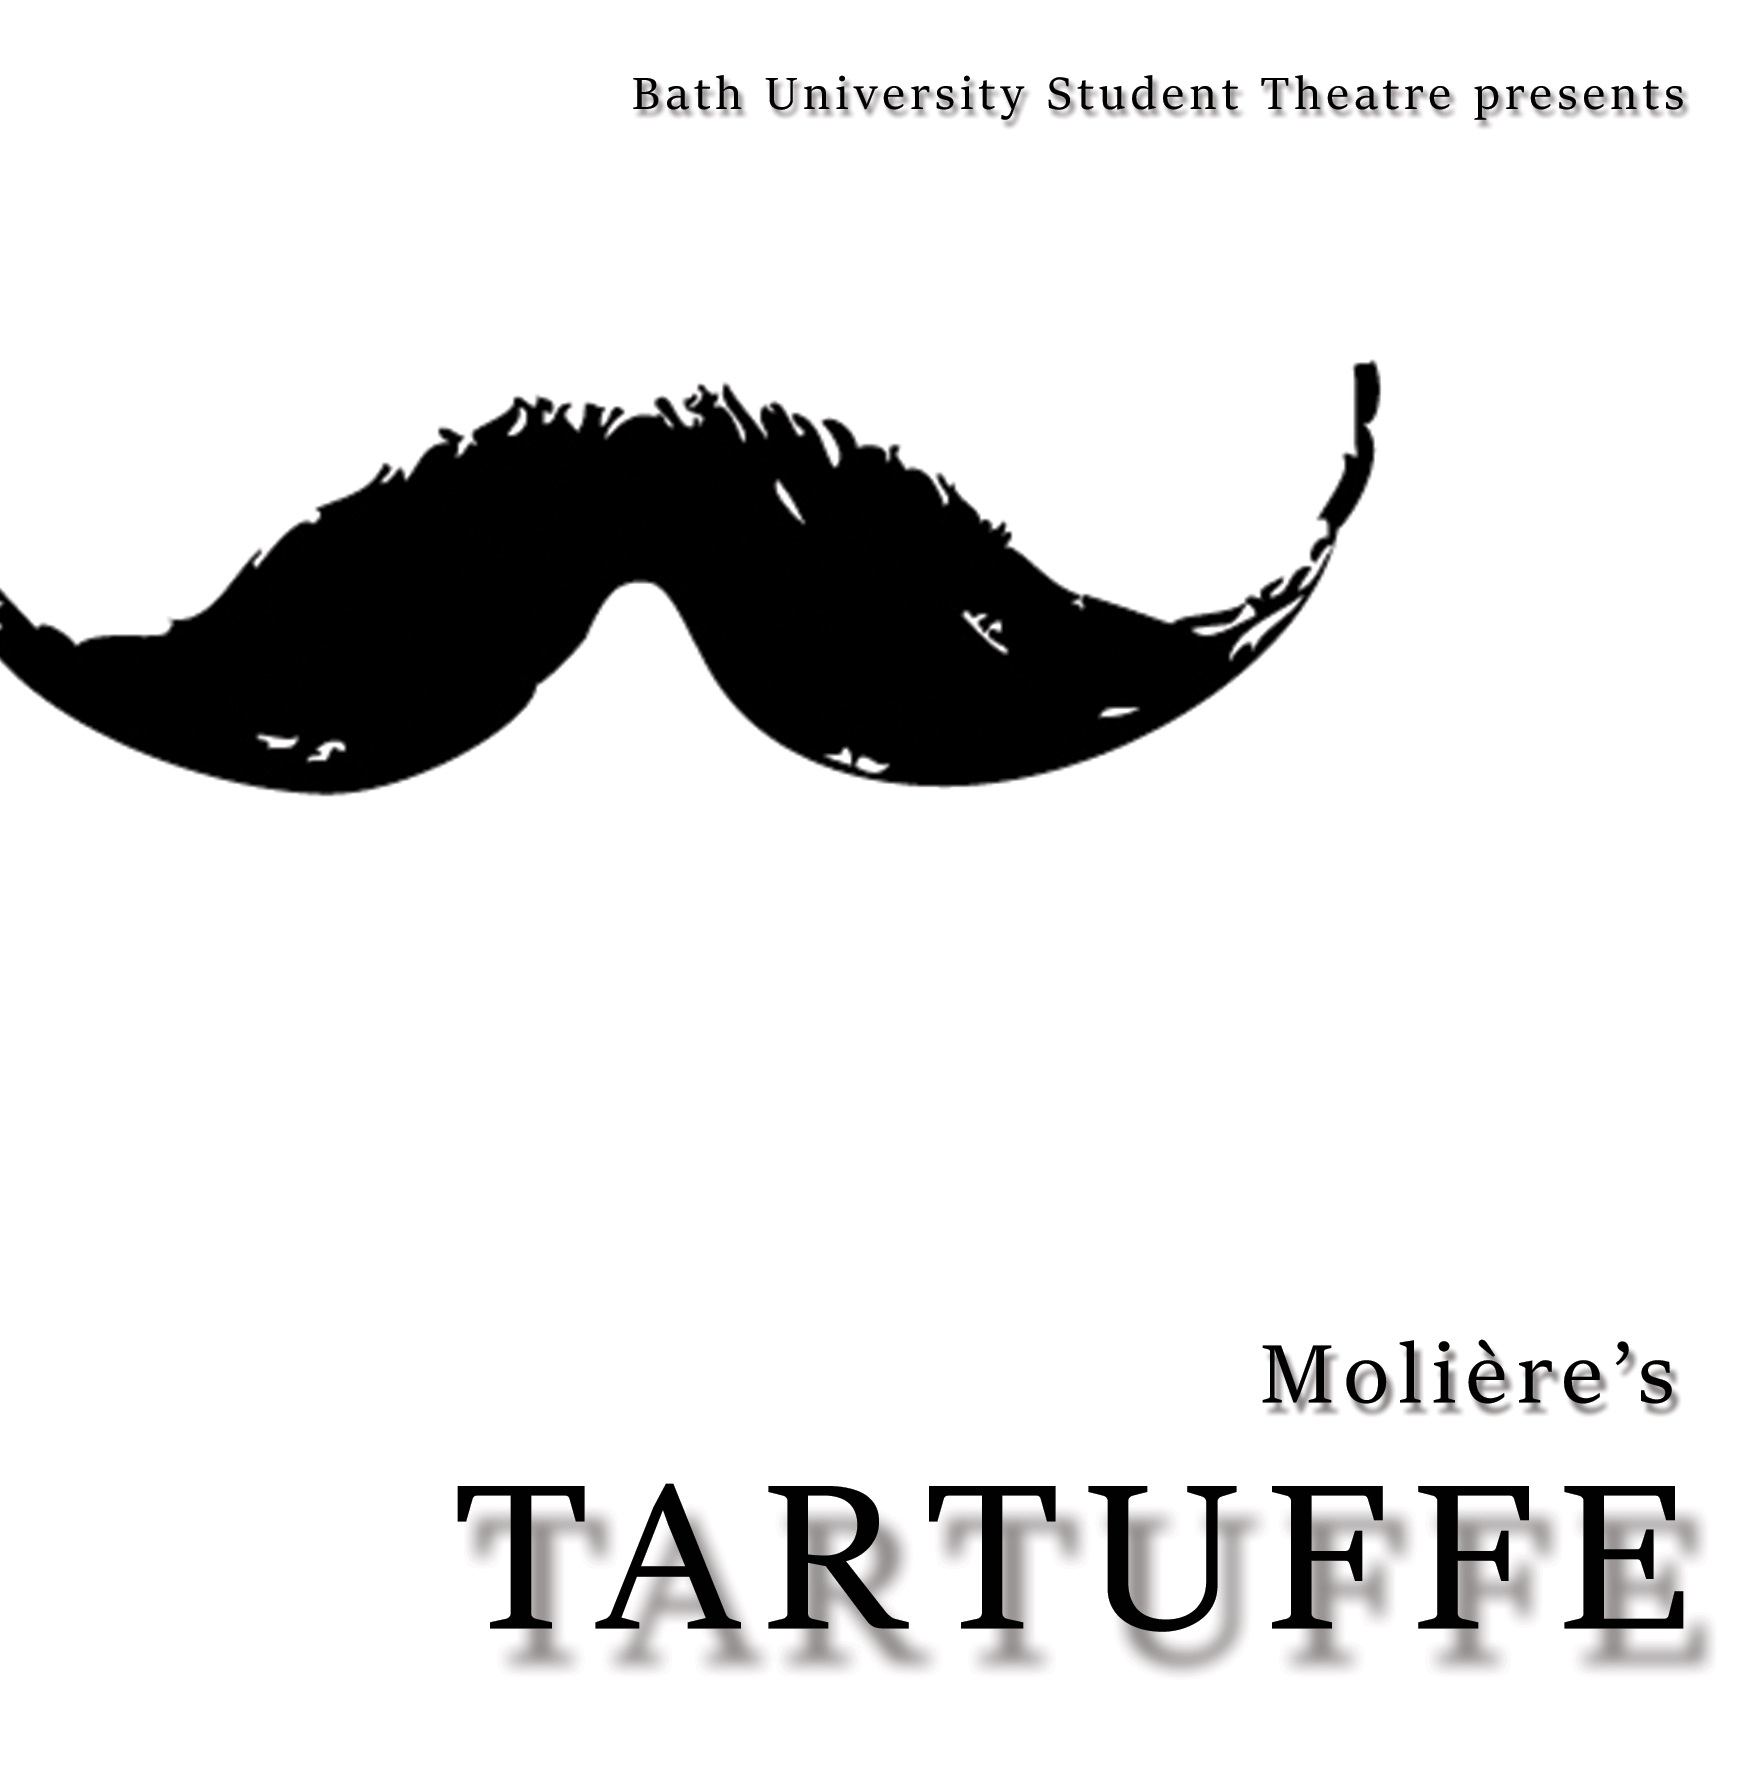 Tartuffe Mission Graphic.jpg